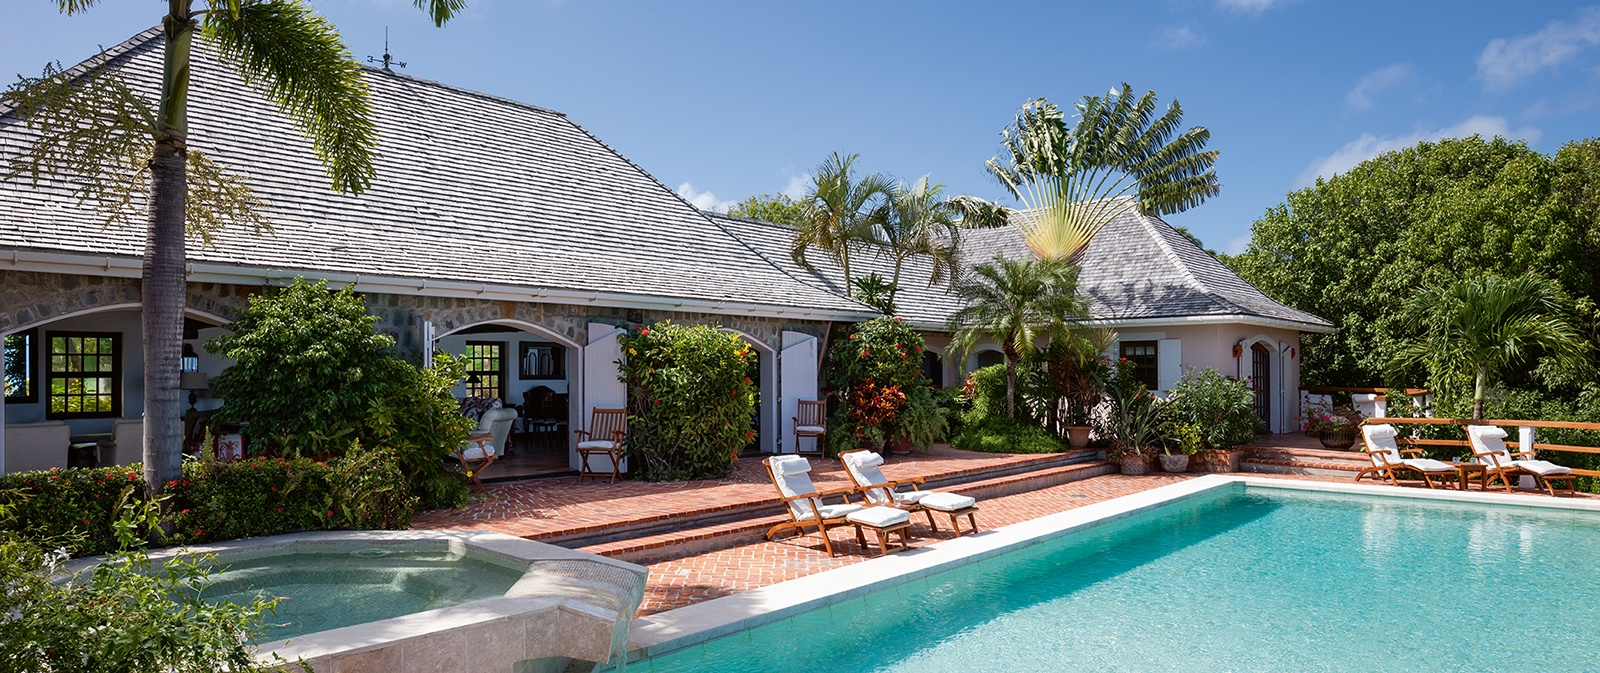 villa chanticleer: sweet seclusion on st barts